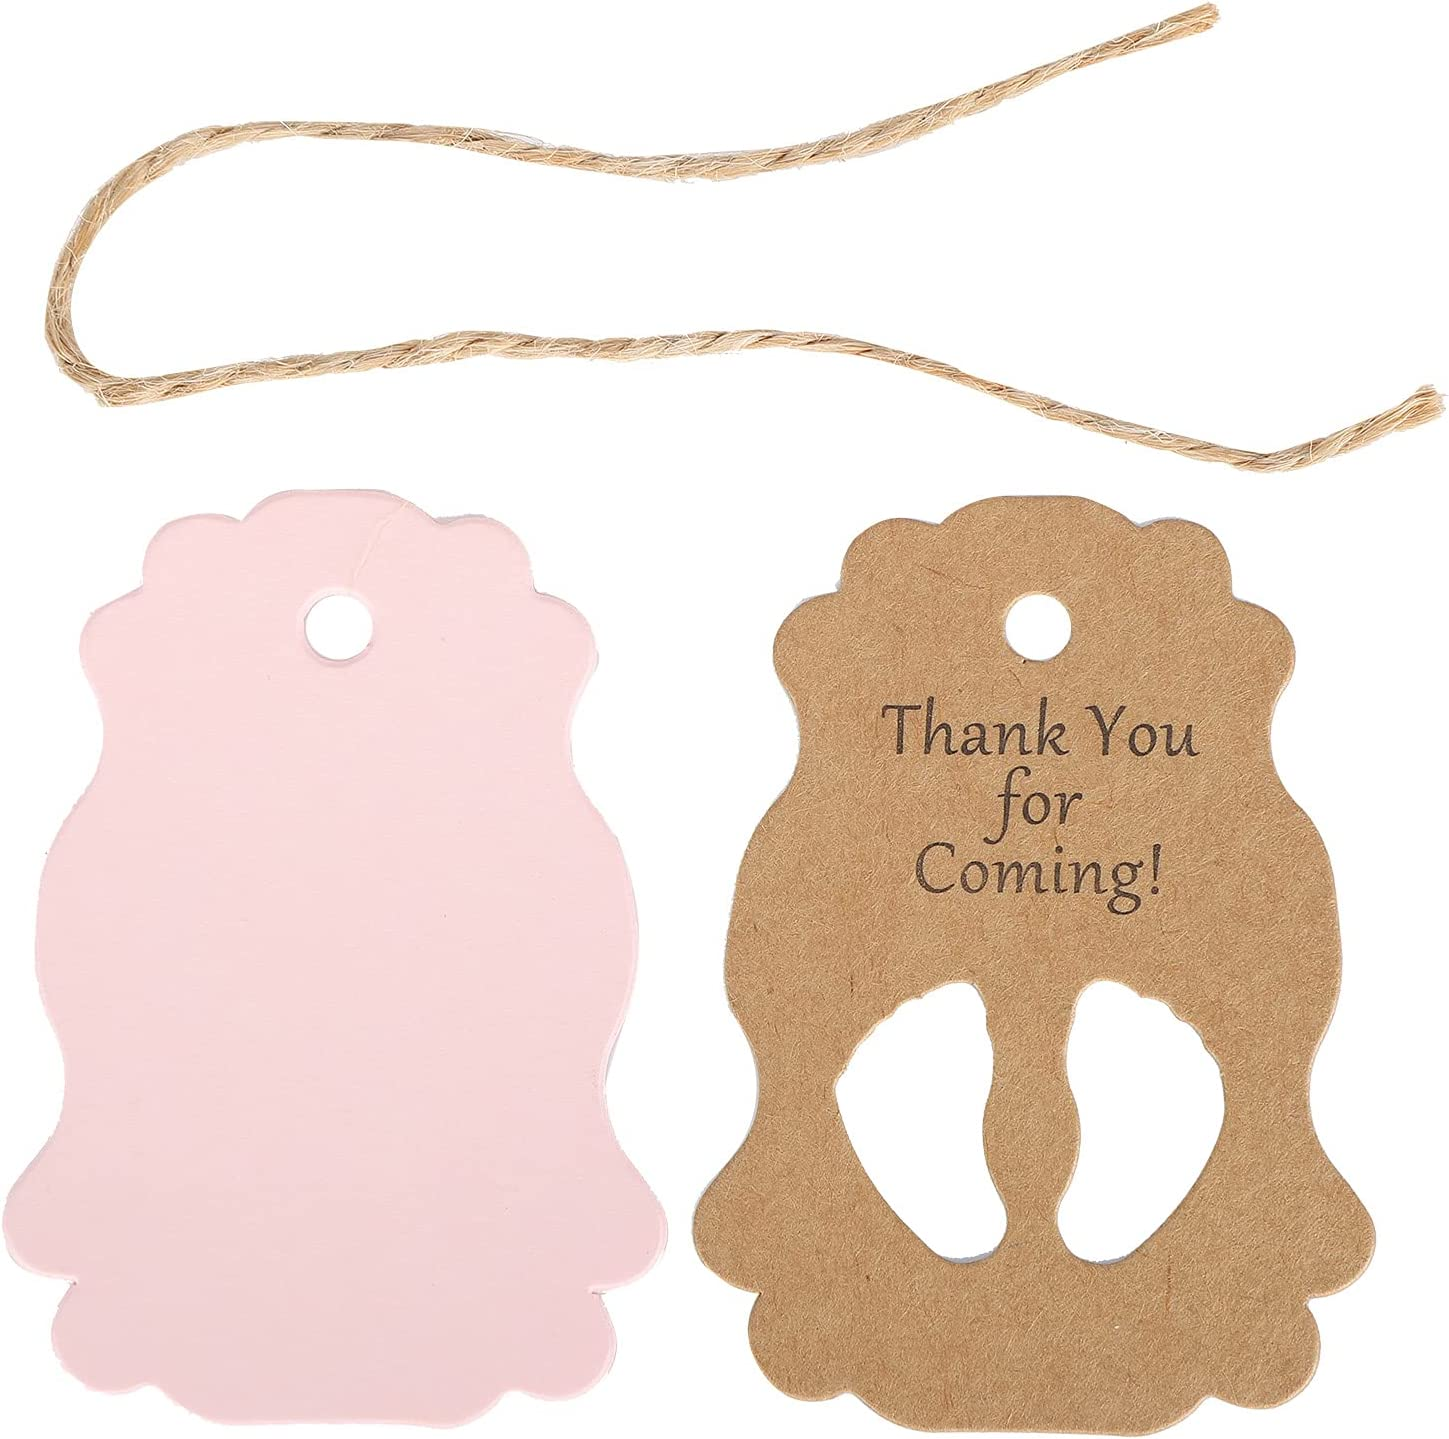 50Pcs Thank You for Coming Baby Feet Kraft Tags with Jute Twine Baby Shower Party Favors, Paper Gift Tags for Baby Shower Birthday Party Supplies